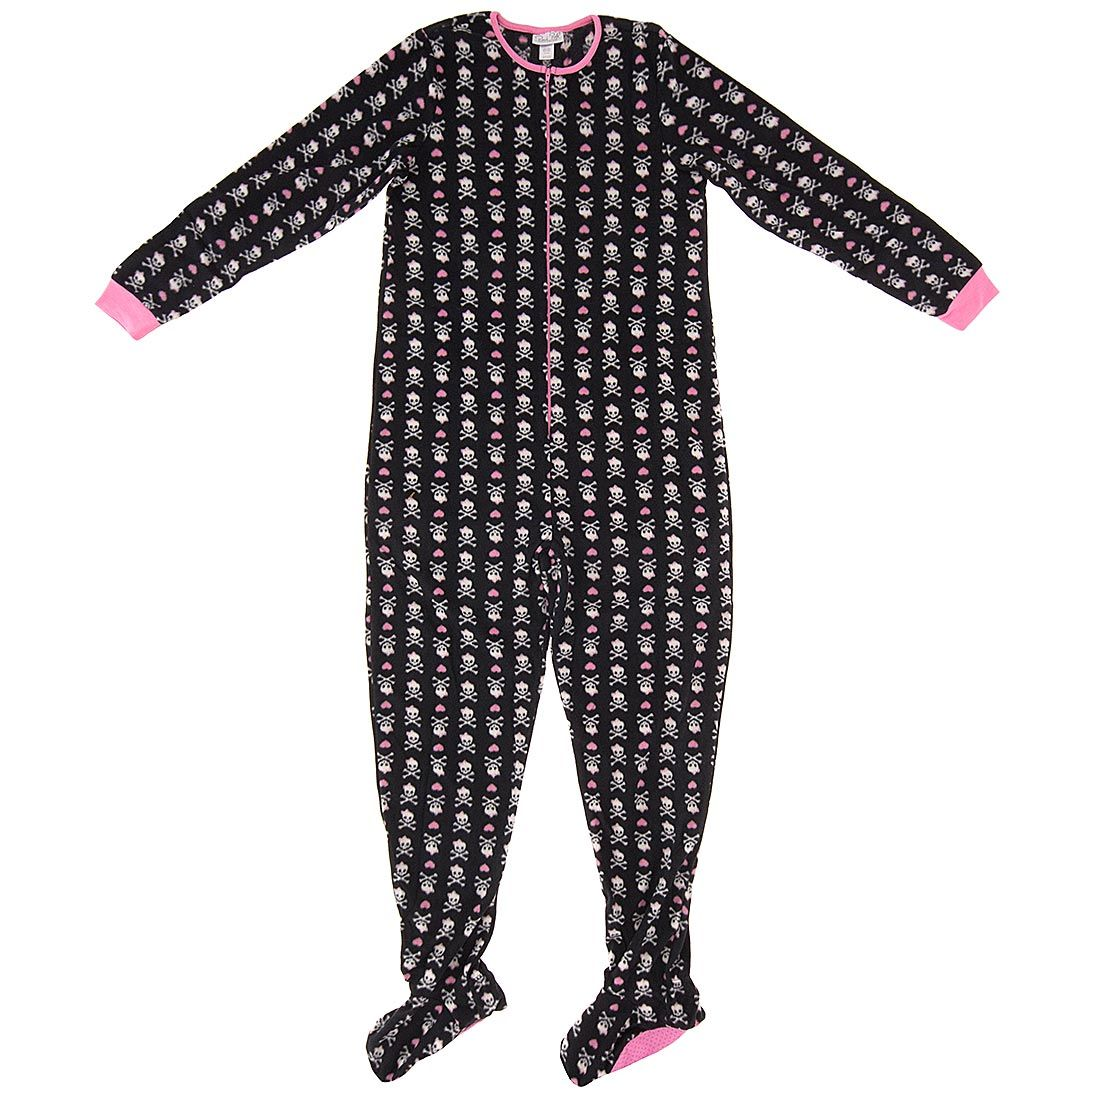 9b2d7b7af4 Black Skull and Heart Footed Pajamas for Women - Click to enlarge ...